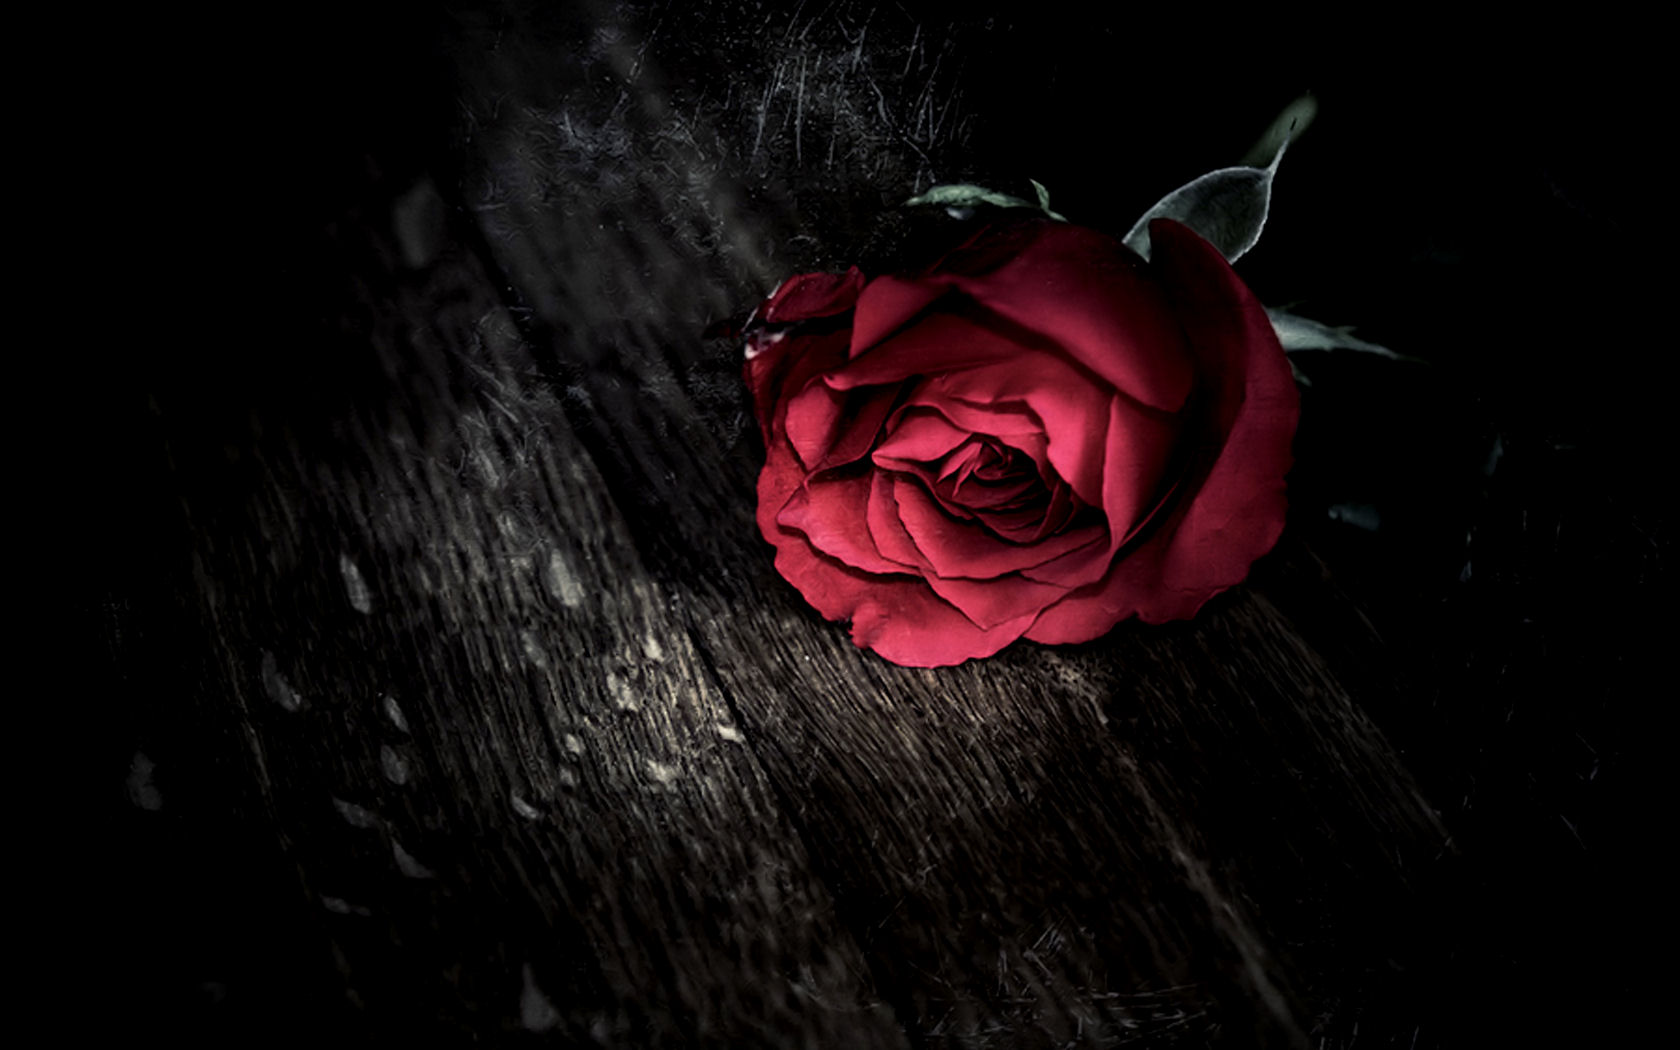 Dark Love Wallpapers 8199 Hd Wallpapers in Love   Imagescicom 1680x1050